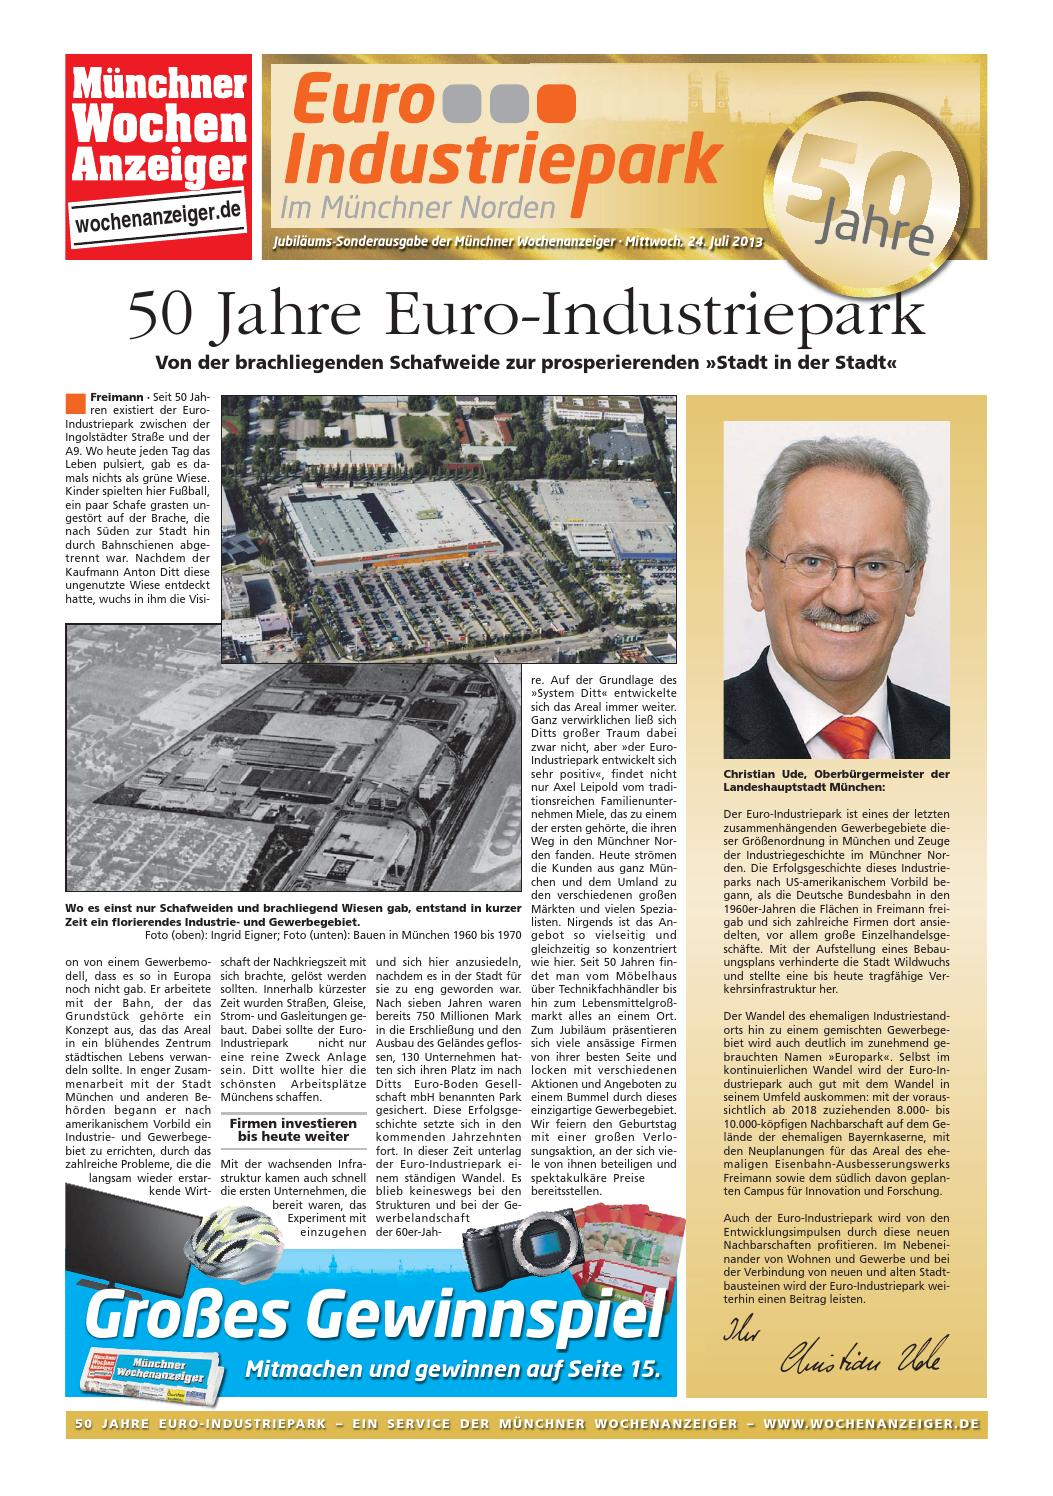 50 jahre euro industriepark by m nchner wochenanzeiger issuu. Black Bedroom Furniture Sets. Home Design Ideas